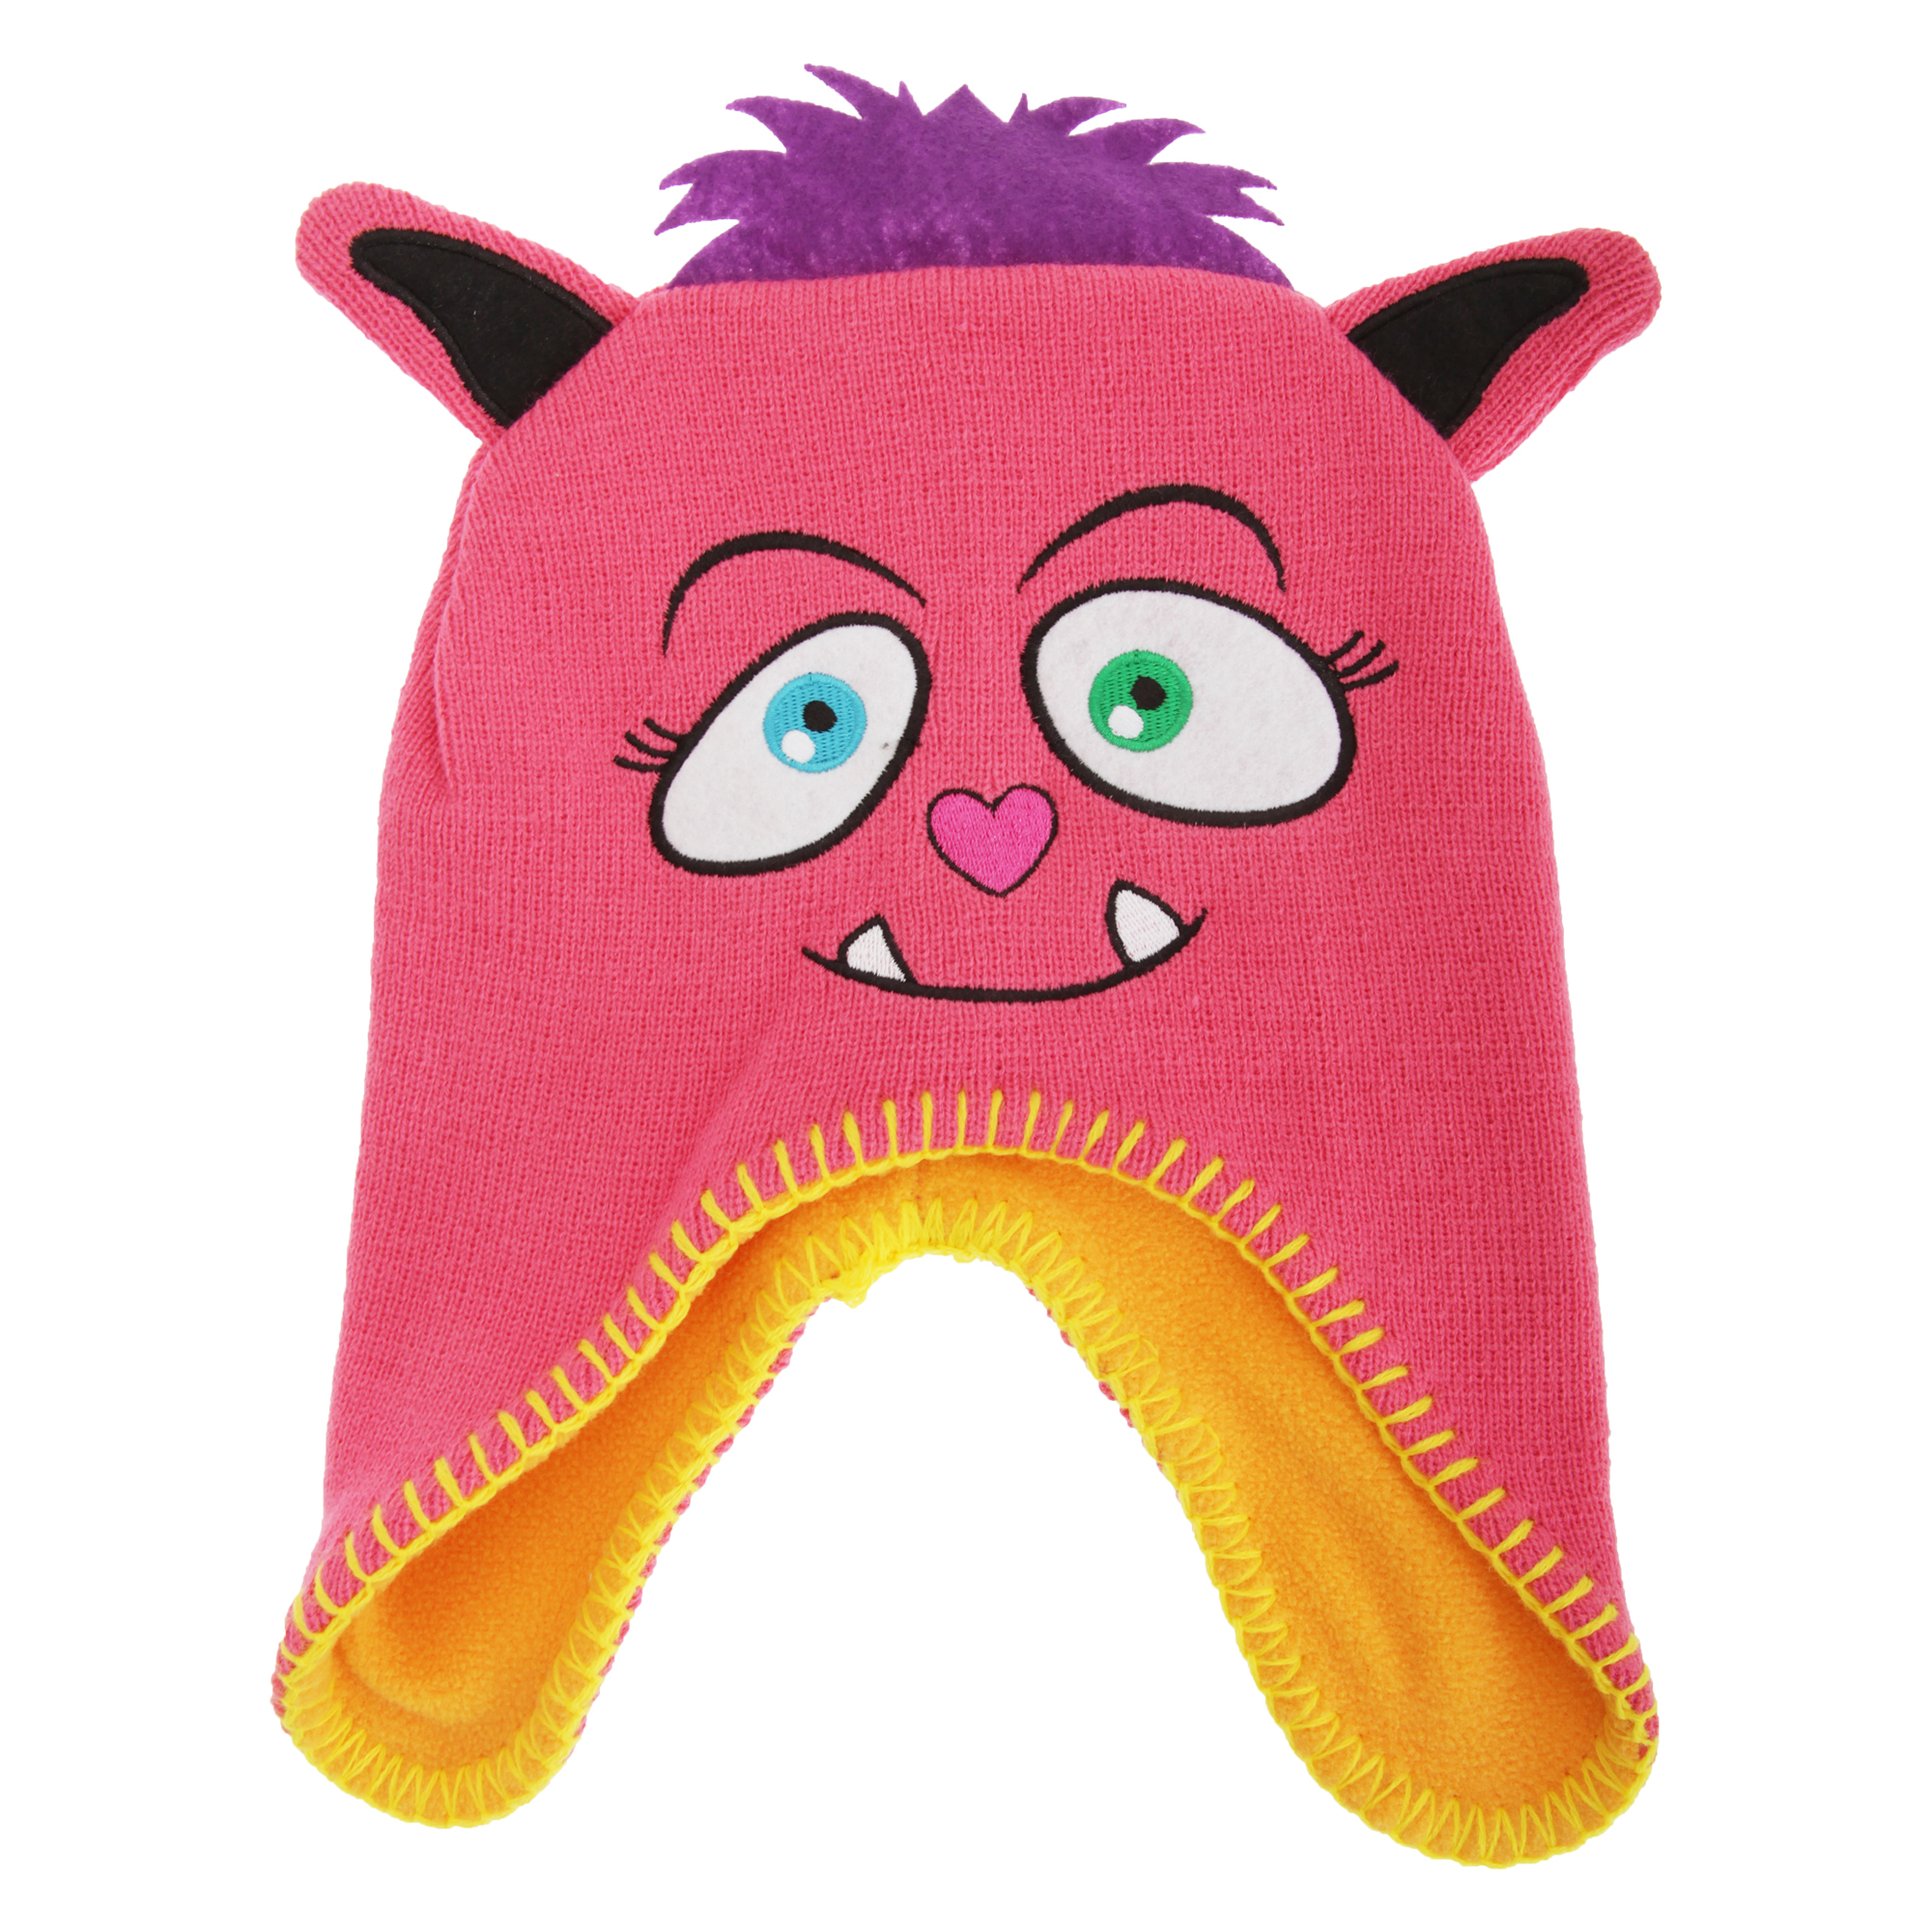 23c8600d0da1f Childrens  Kids Girls Monster Design Thermal Peruvian Warm Winter Hat   Beanie